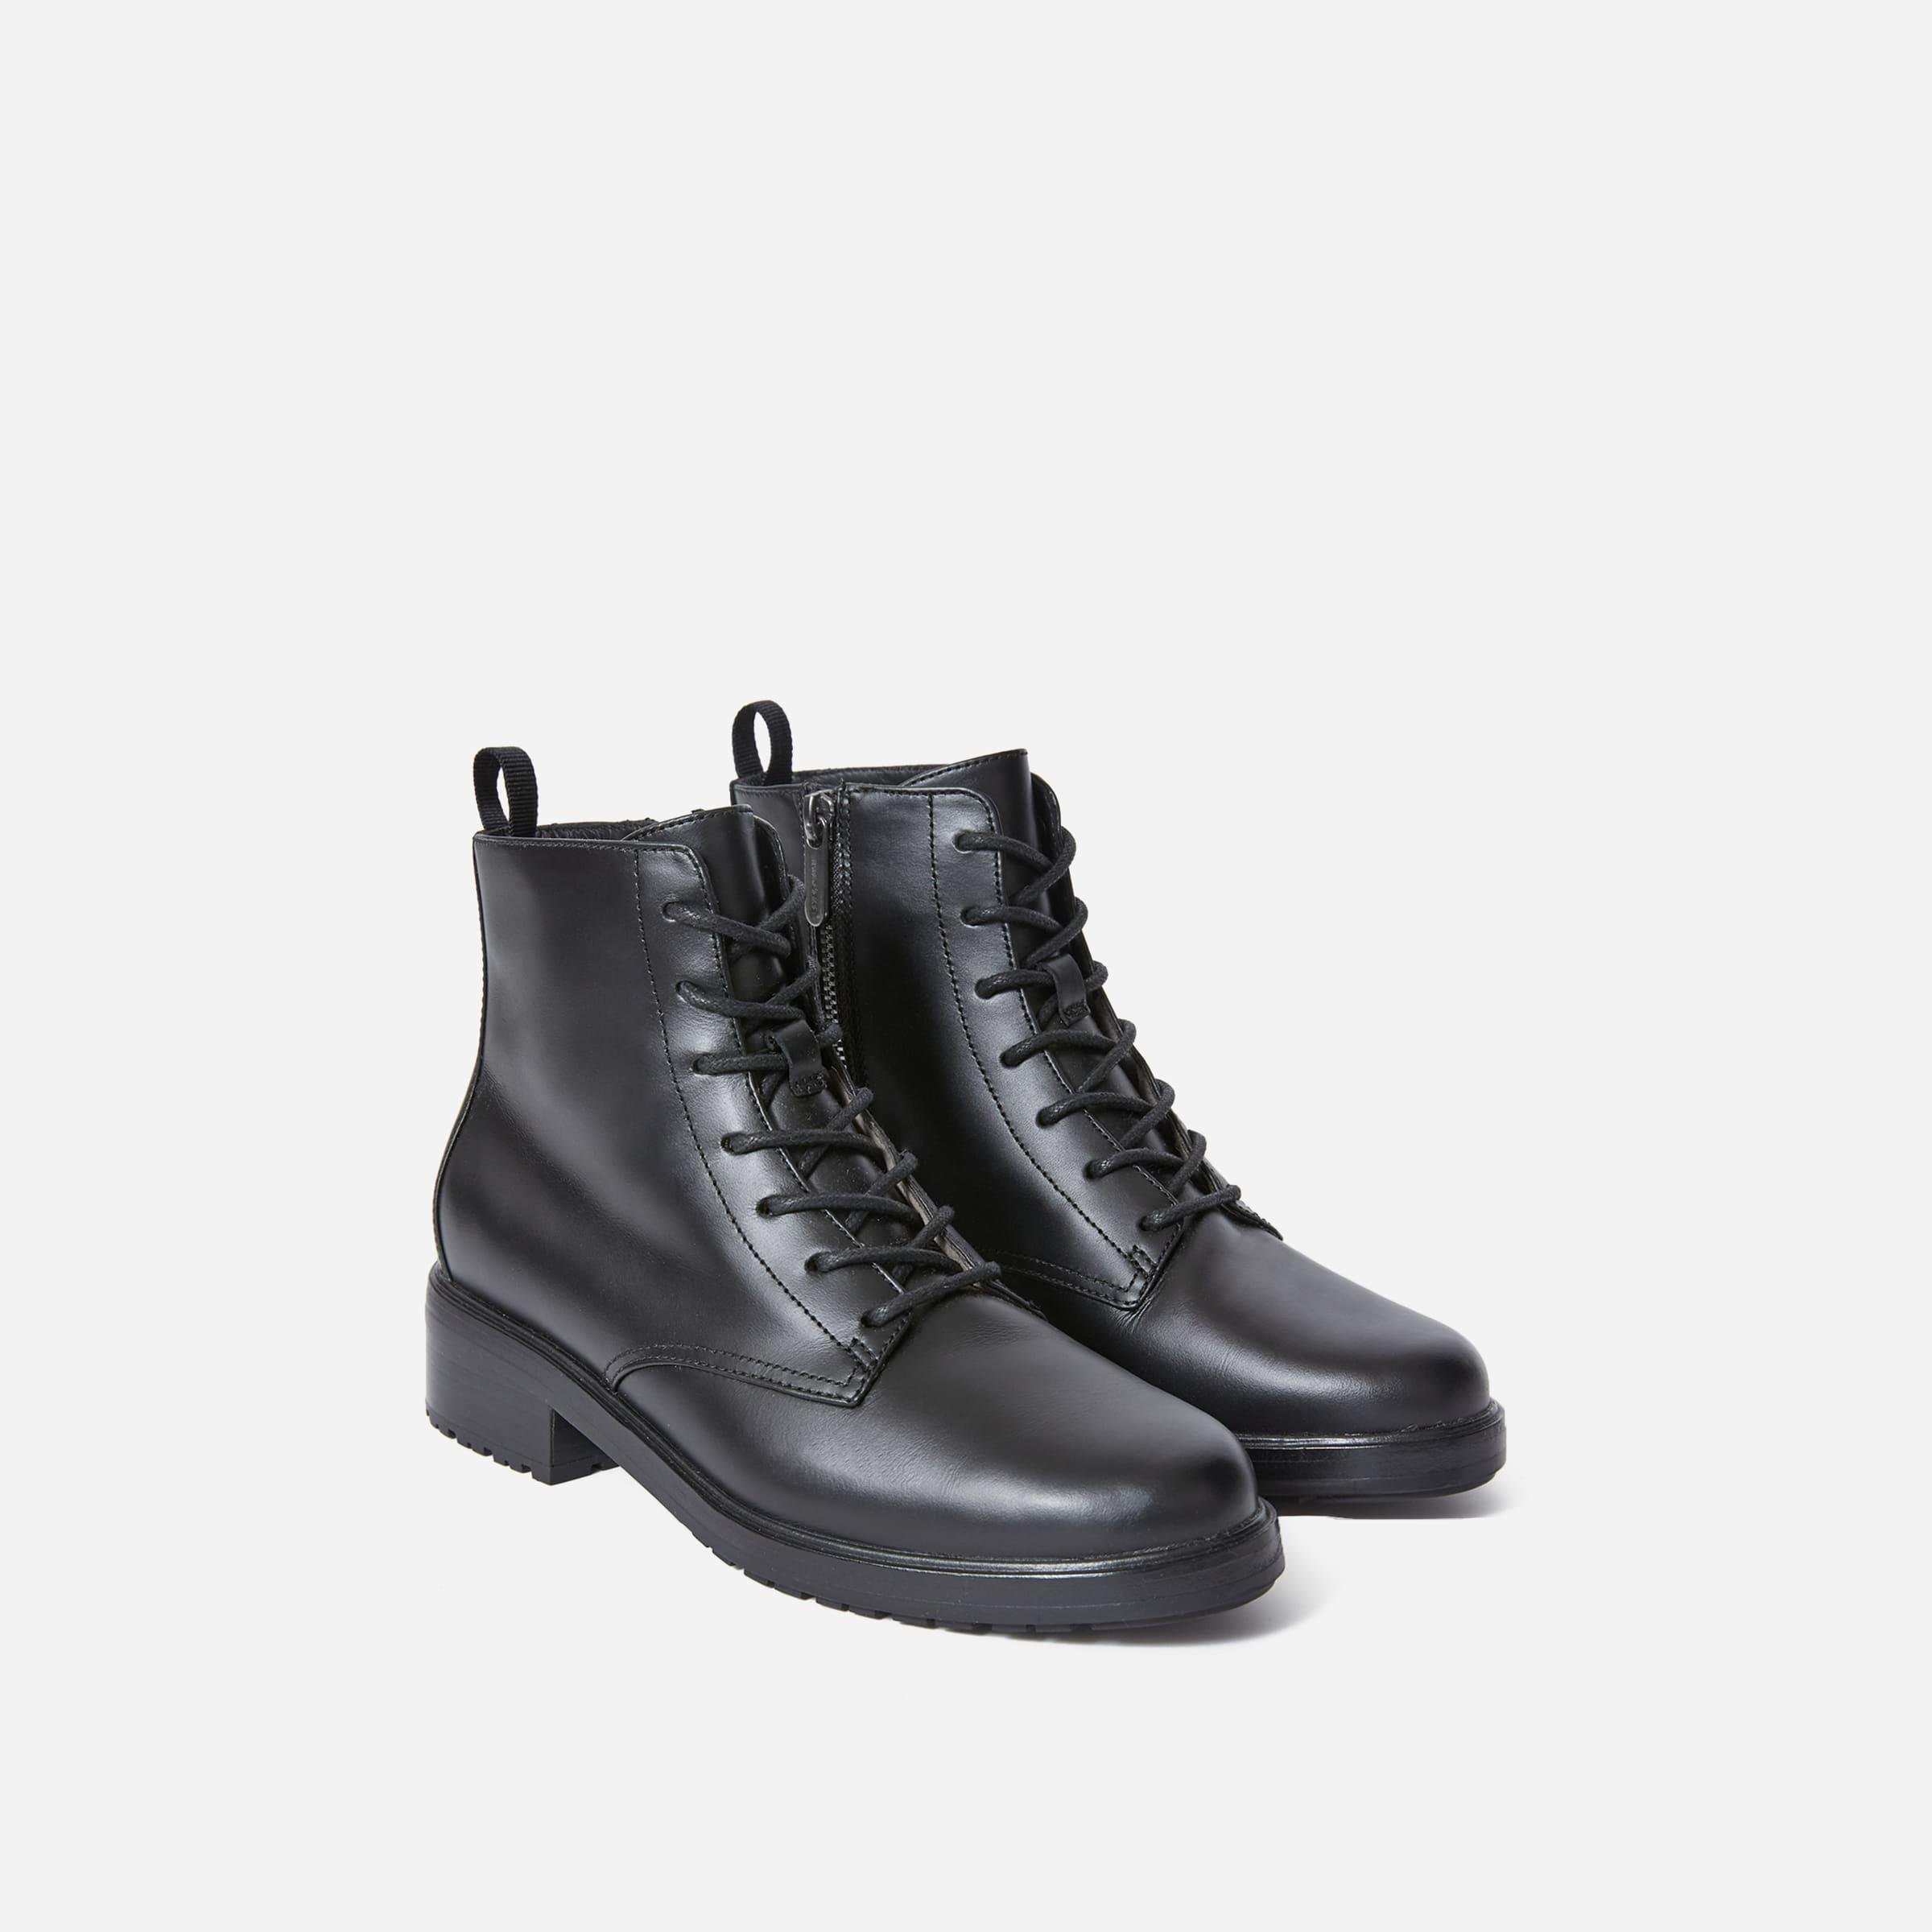 The Modern Utility Lace-Up Boot 1